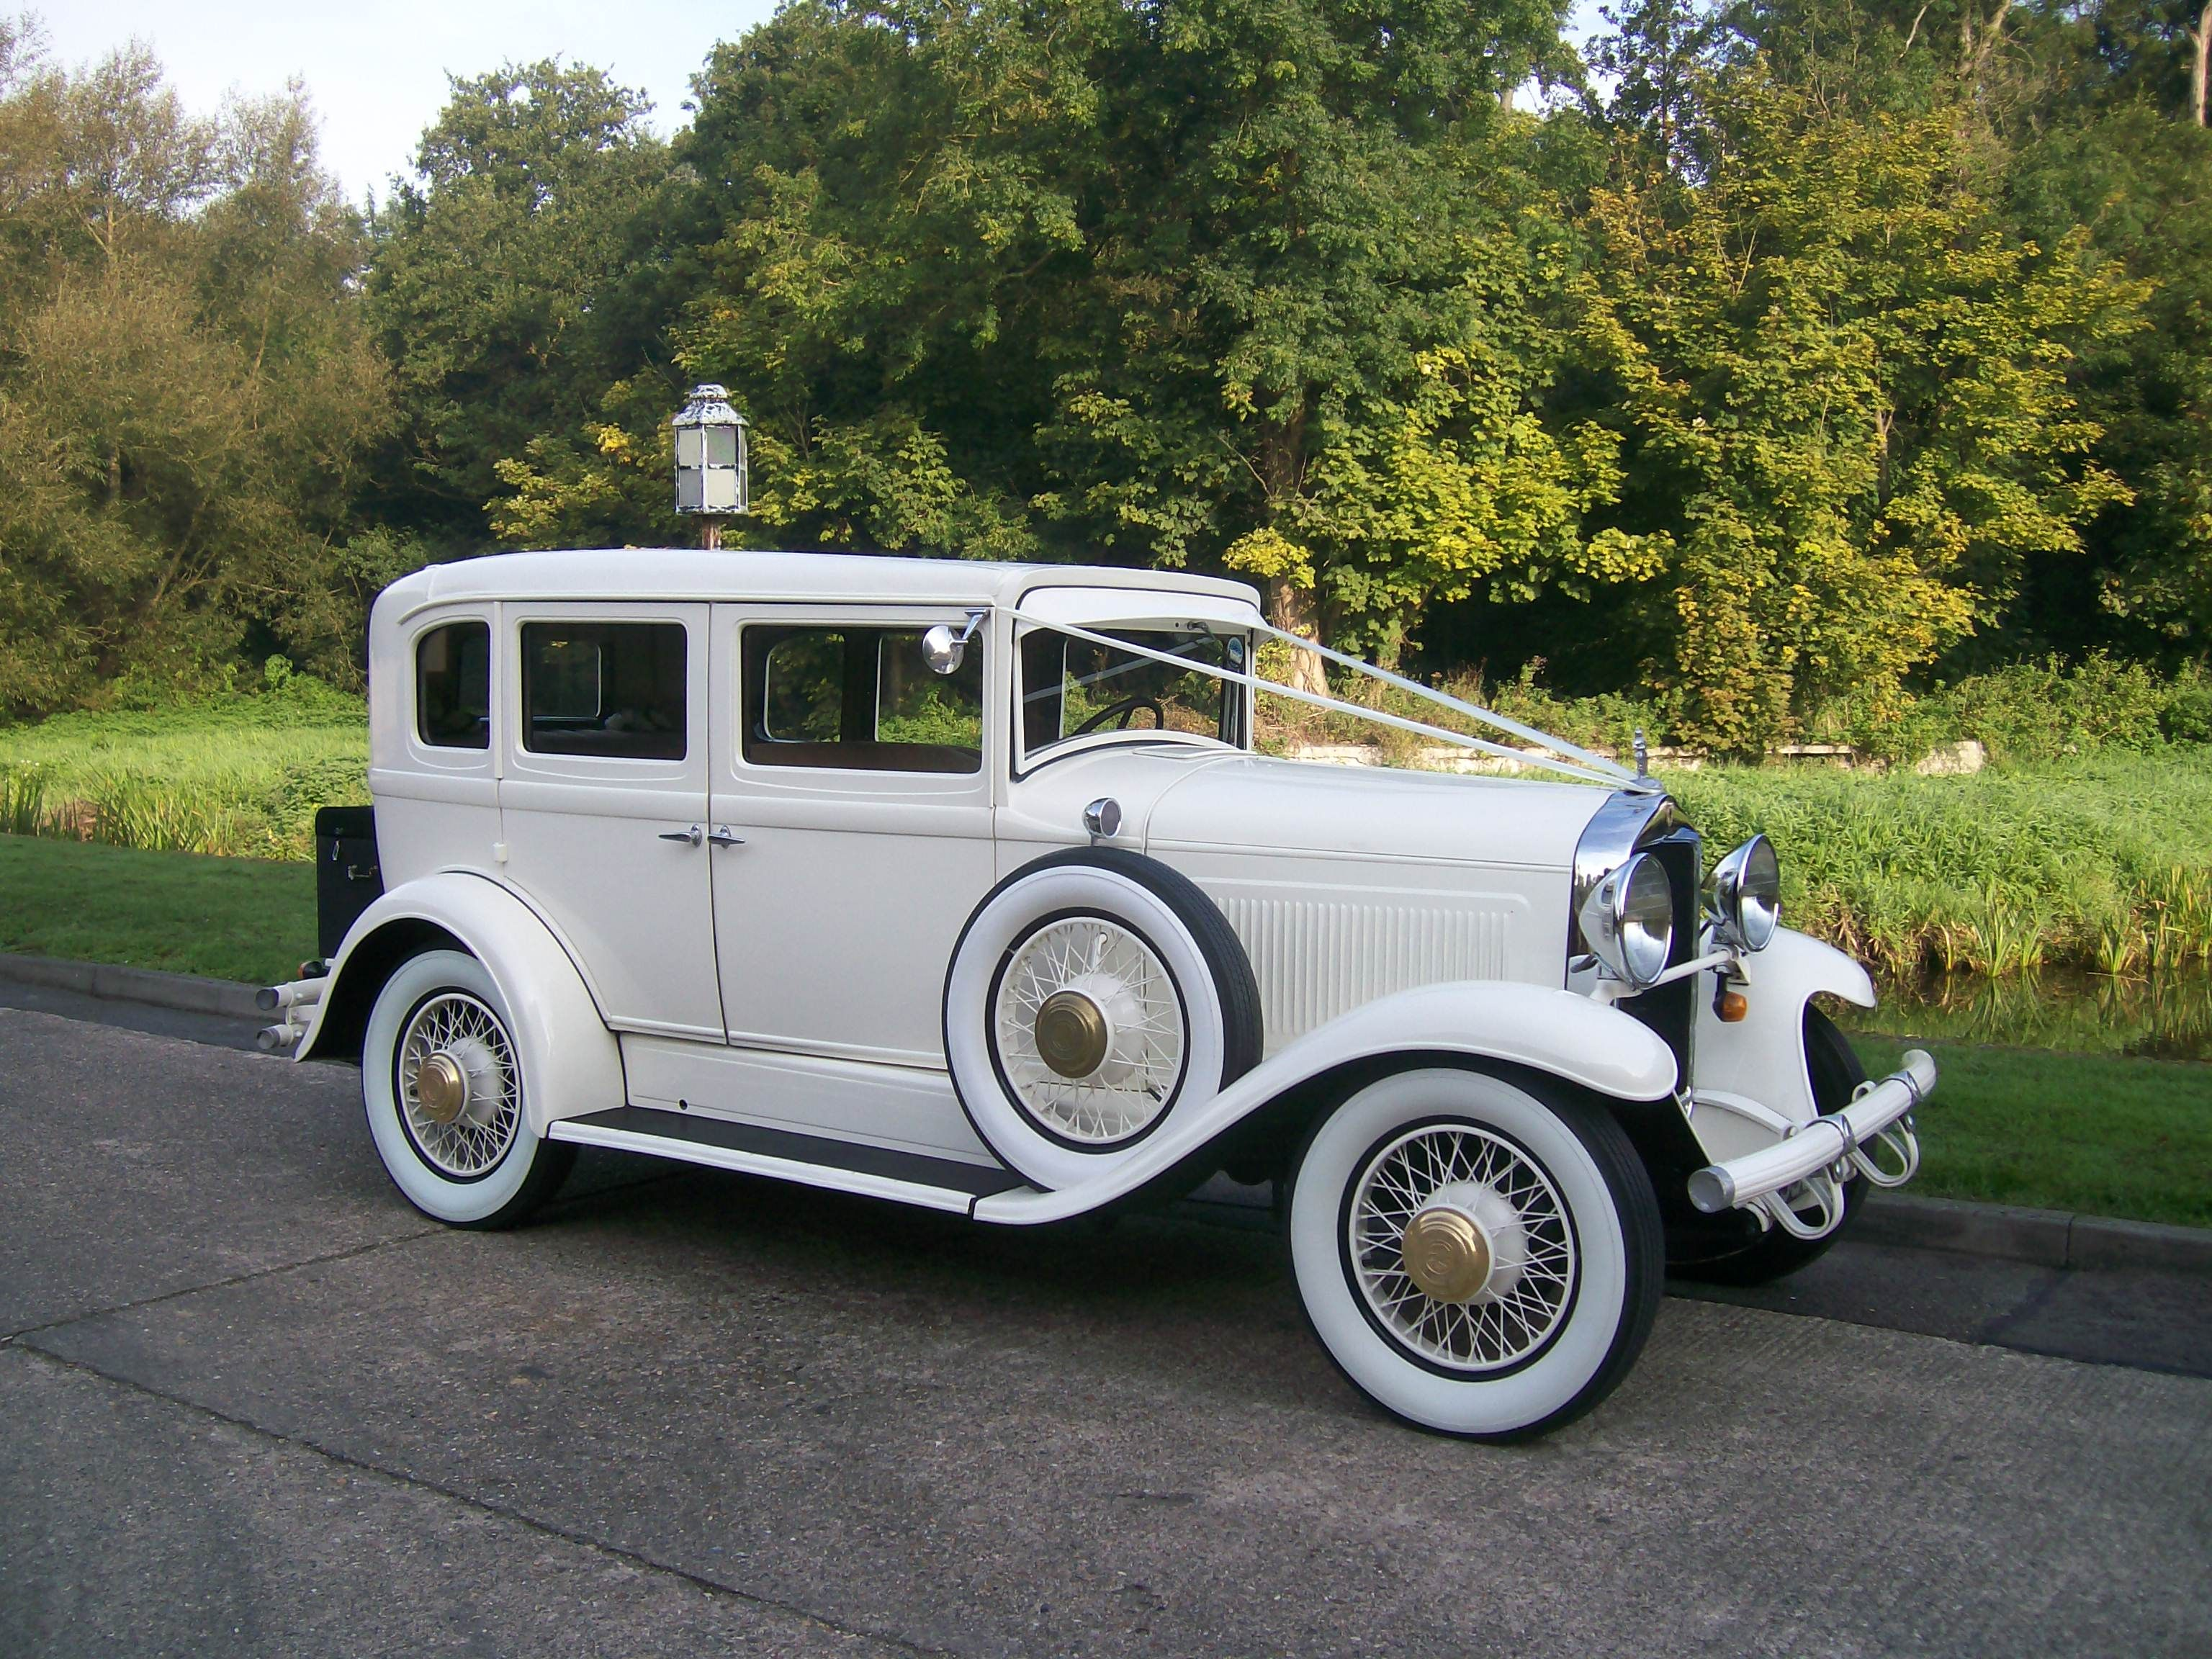 WHITE OLD limousine CARS | 1956 Armstrong Siddeley Limousine – White ...